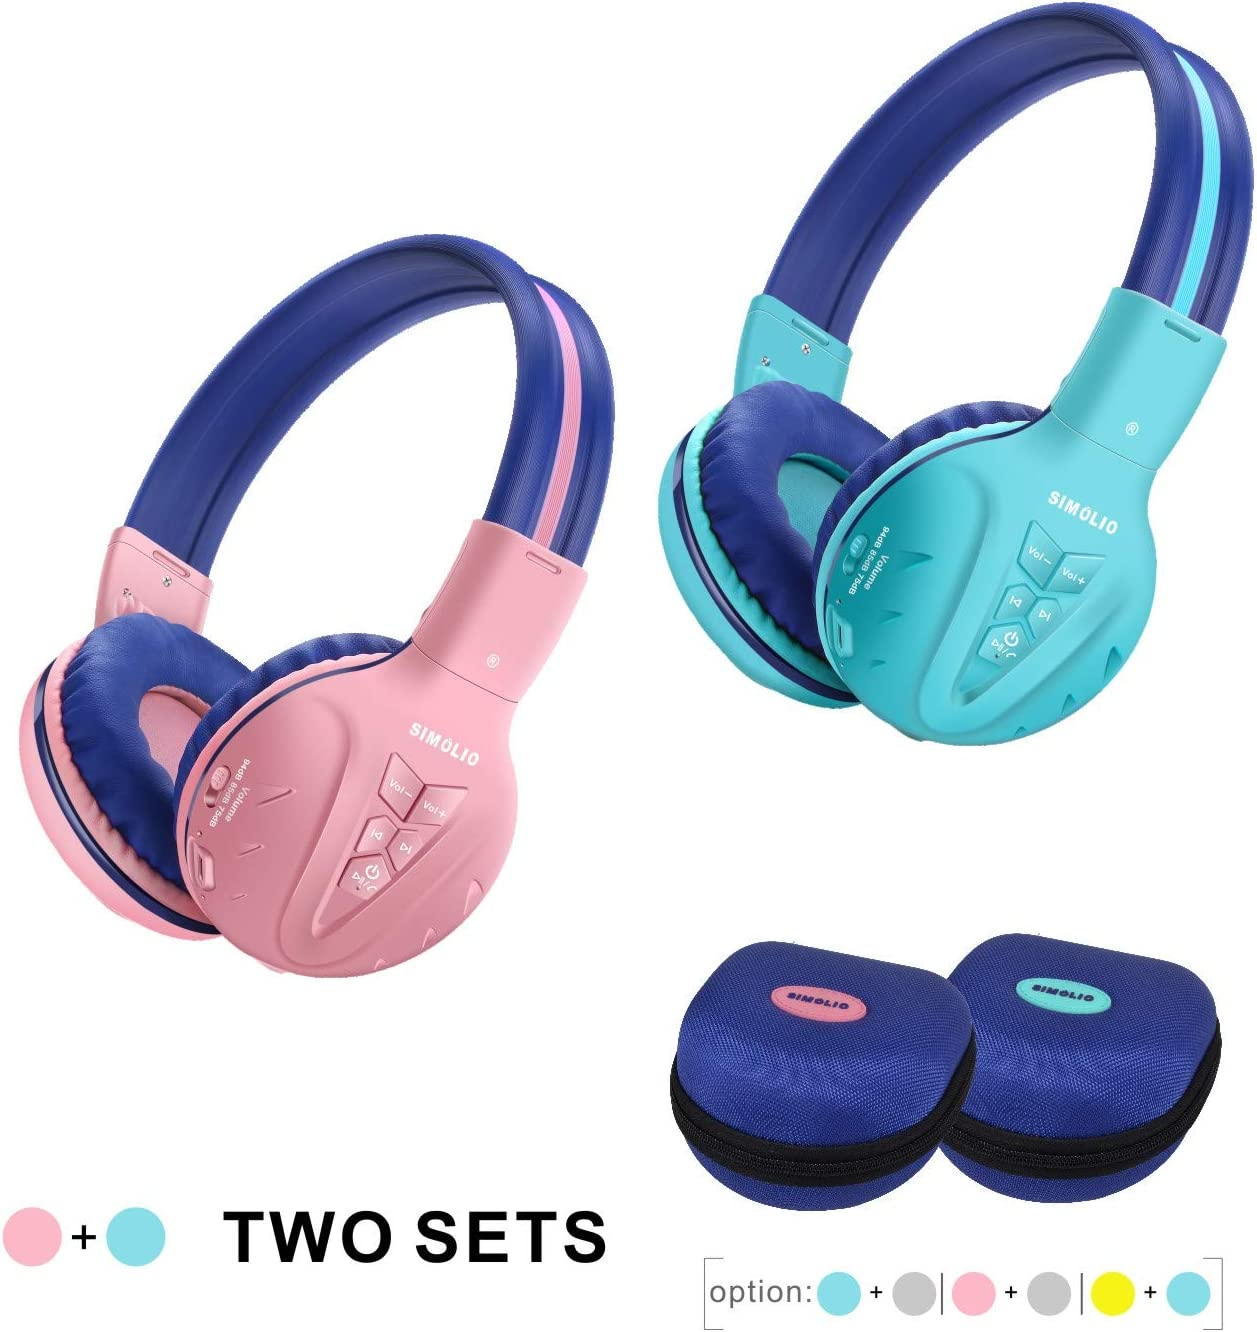 Amazon Com 2 Pack Of Simolio Wireless Bluetooth Kids Headphone With Hard Case Wireless Kids Safe Headphone Volume Limited Wireless Headphones For Girls Boys Over Ear Kids Headphone For School Travel Mint Pink Electronics